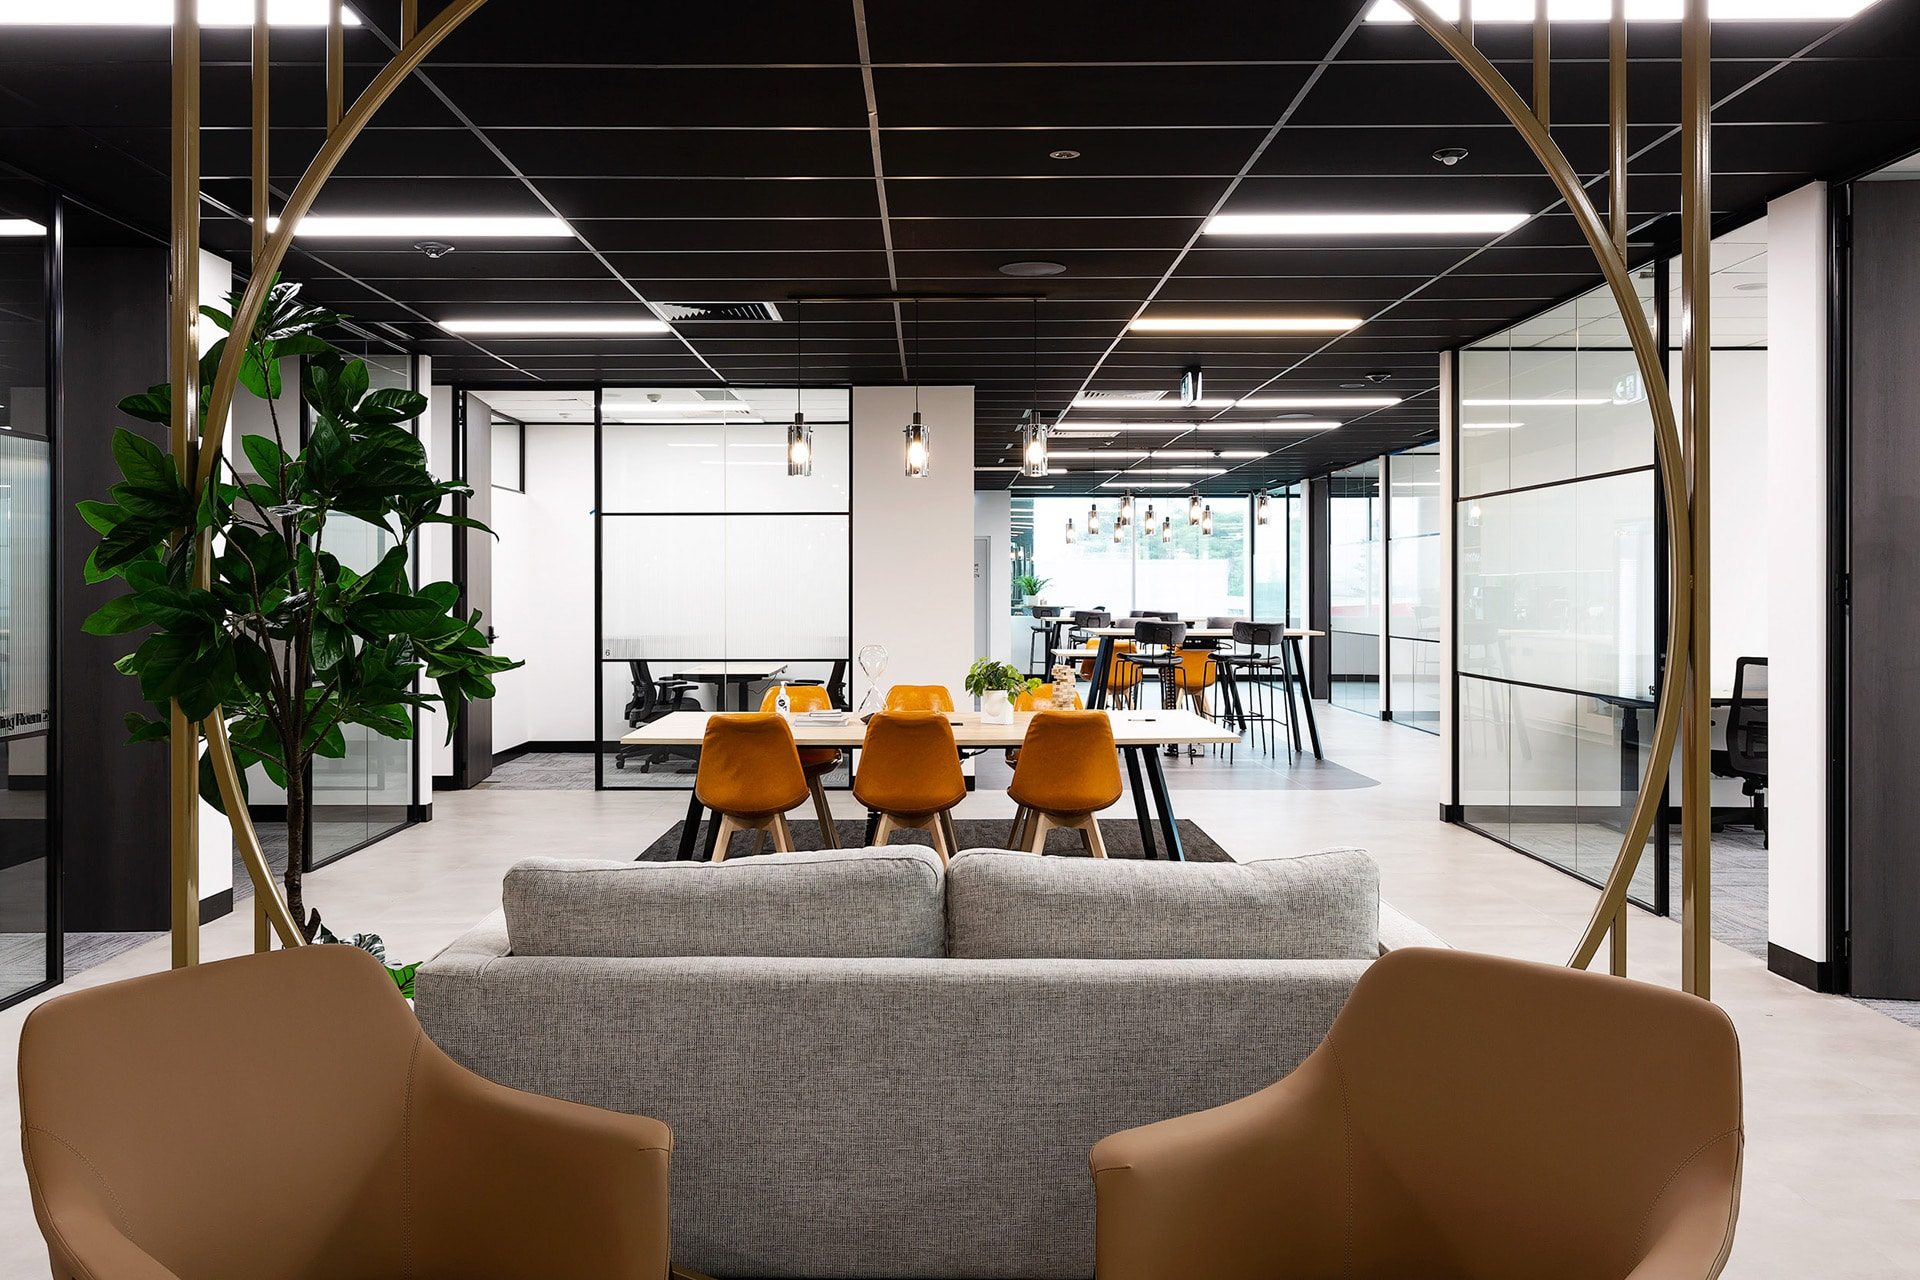 The Top 5 Benefits of a Flexible Coworking Space